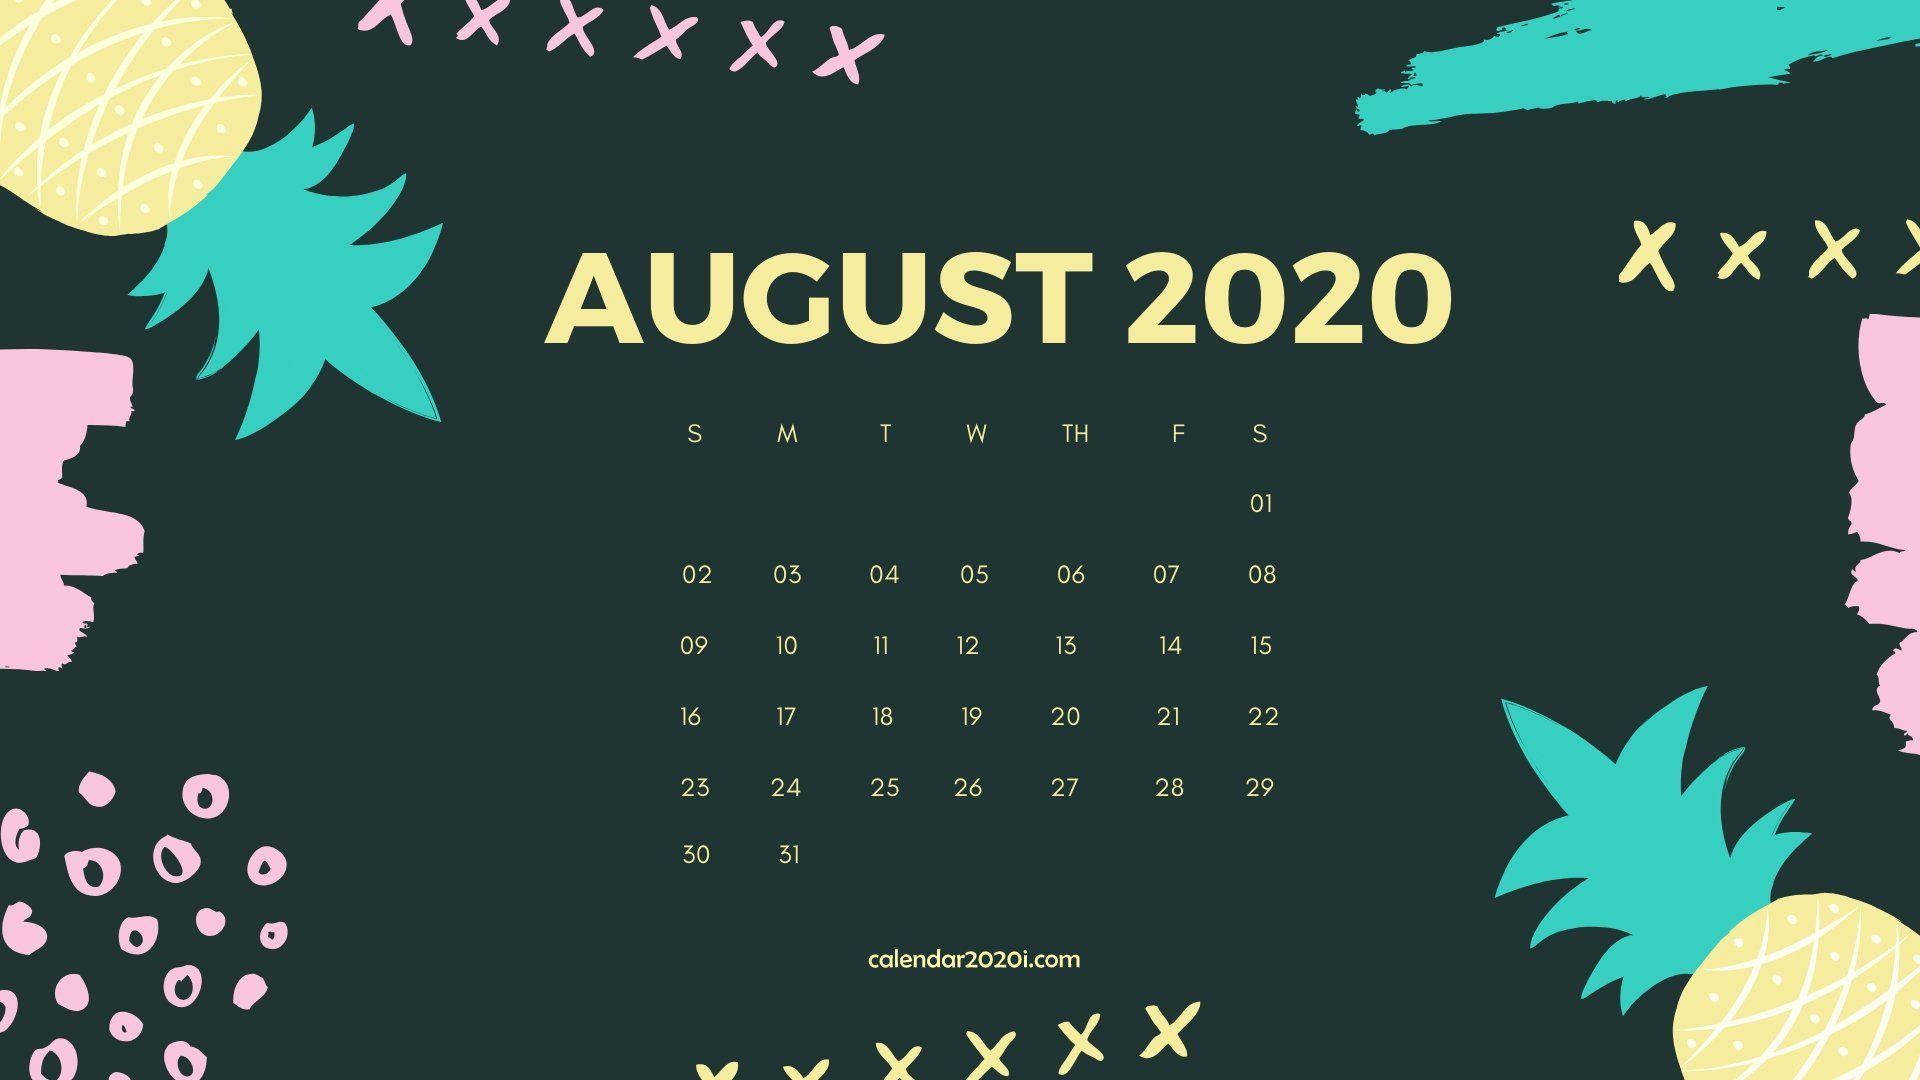 August 2020 Calendar Desktop Wallpaper in 2019 August wallpaper 1920x1080